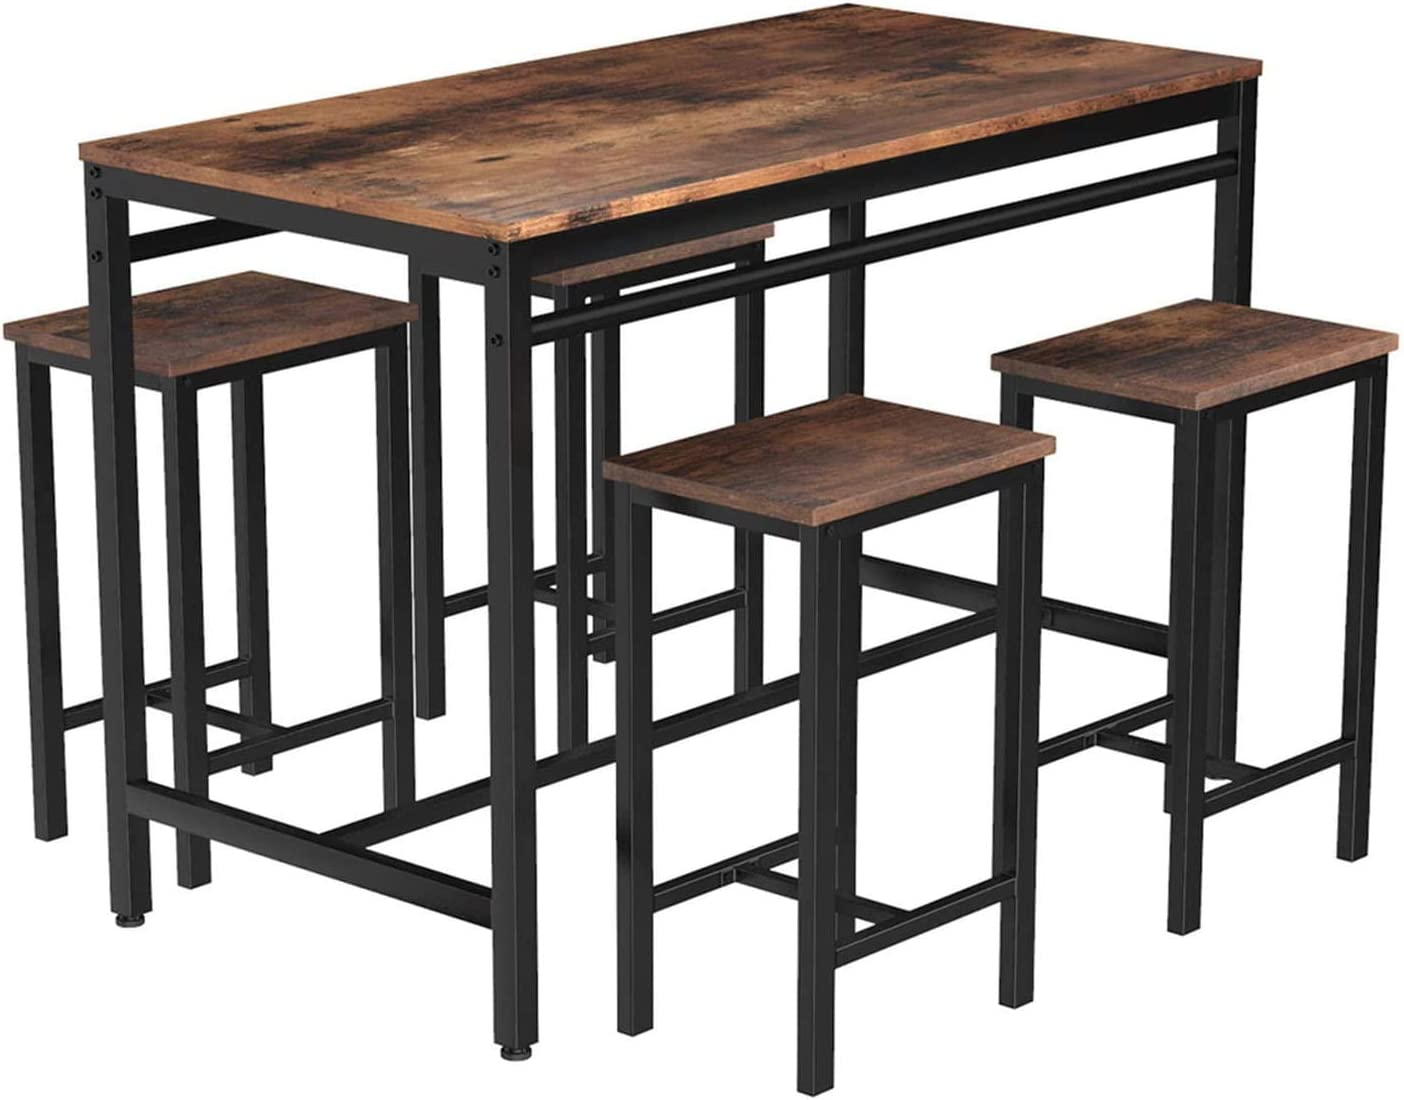 MIERES Dining Table Set for 4 Metal Legs Stools Industrial Kitchen Counter w/Adjustable Feet, Breakfast Nook Wood Tabletop of 47x 23.6 x 32.7, Small Space Table & Chairs, 5pcs, Rustic Brown